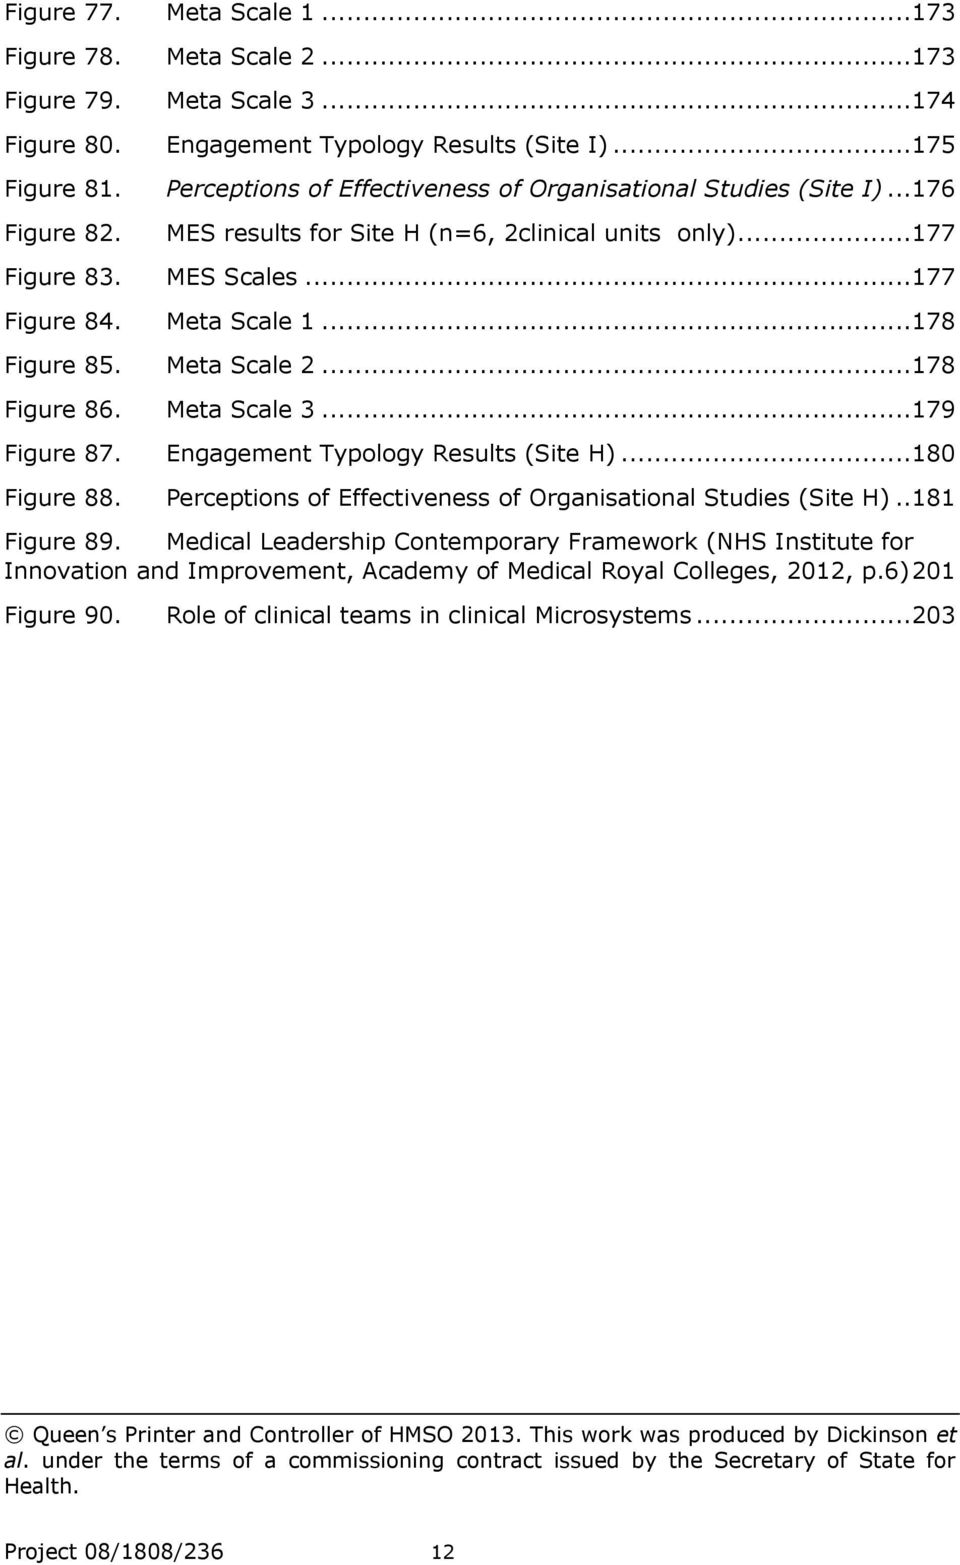 ..178 Figure 85. Meta Scale 2...178 Figure 86. Meta Scale 3...179 Figure 87. Engagement Typology Results (Site H)...180 Figure 88. Perceptions of Effectiveness of Organisational Studies (Site H).